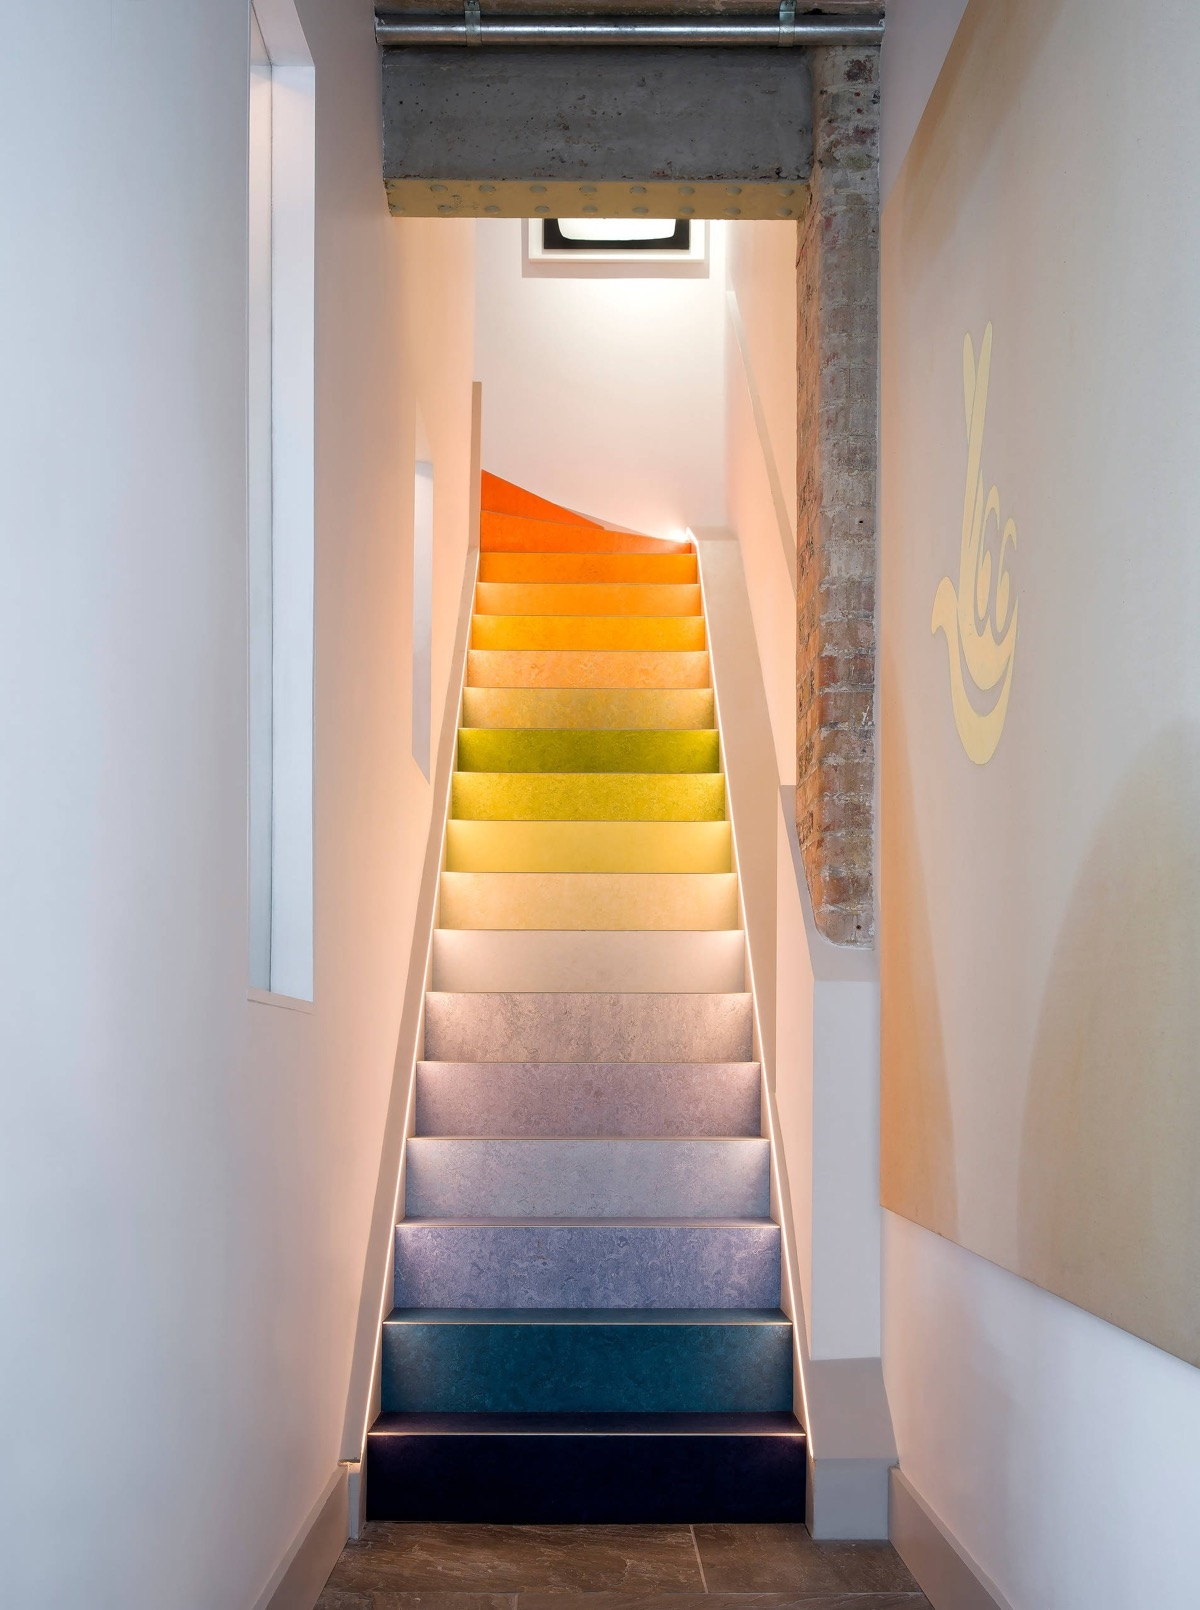 51 Stunning Staircase Design Ideas | Staircase Side Wall Design | Farmhouse | Ladder | Bookshelf | Small Space | Beautiful